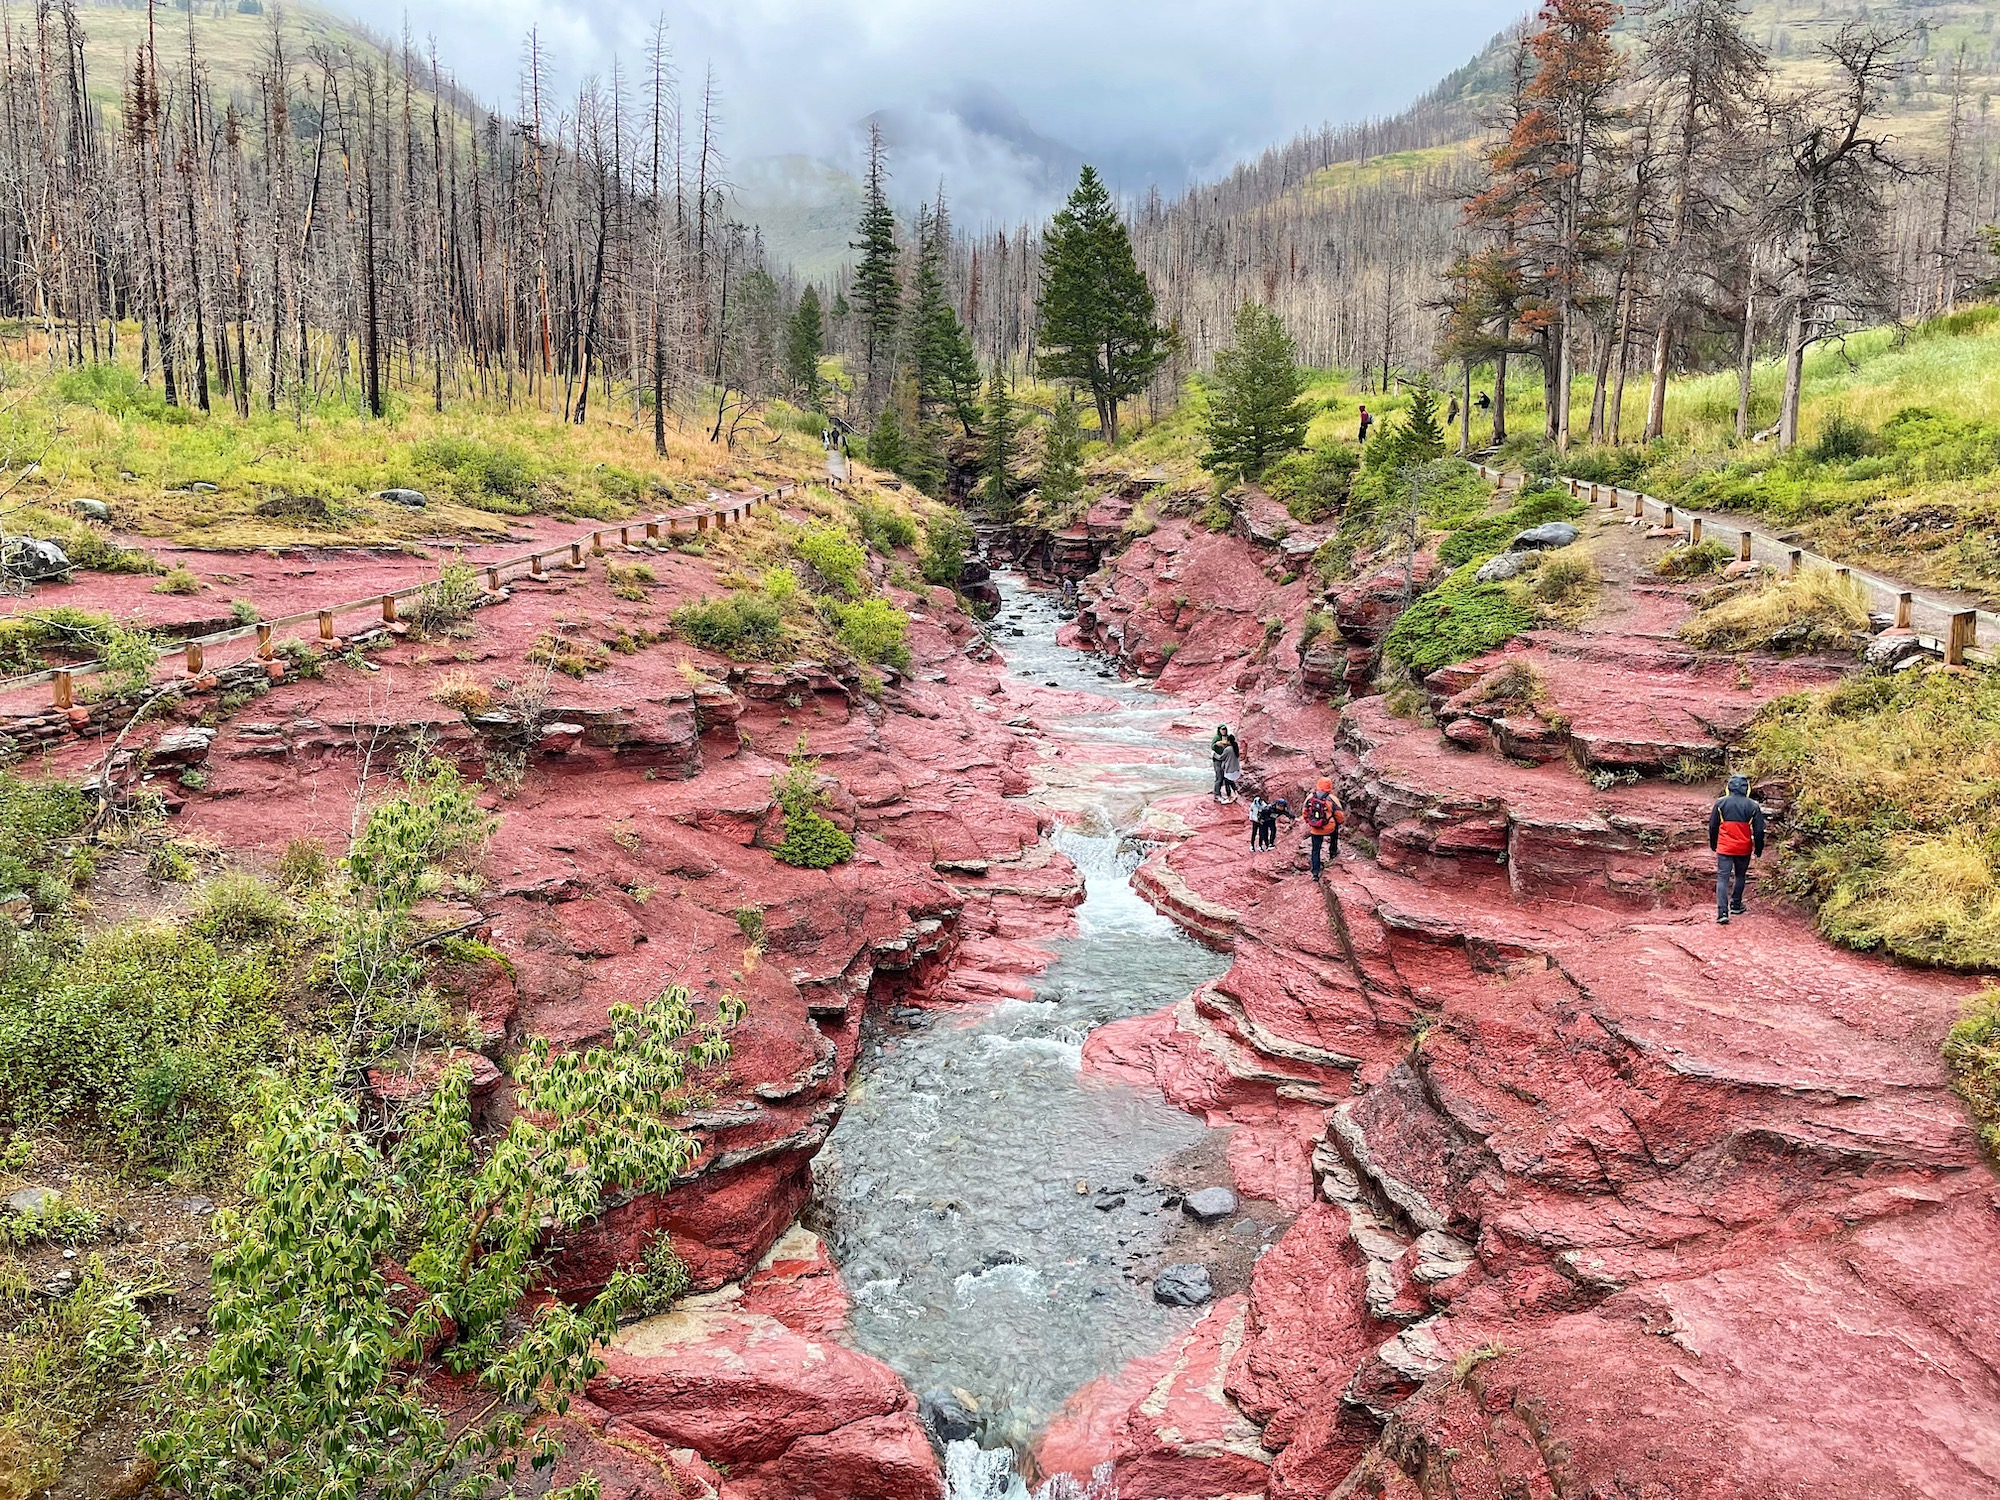 Hiking at Red Rock Canyon and Blakiston Falls in Waterton via @outandacross